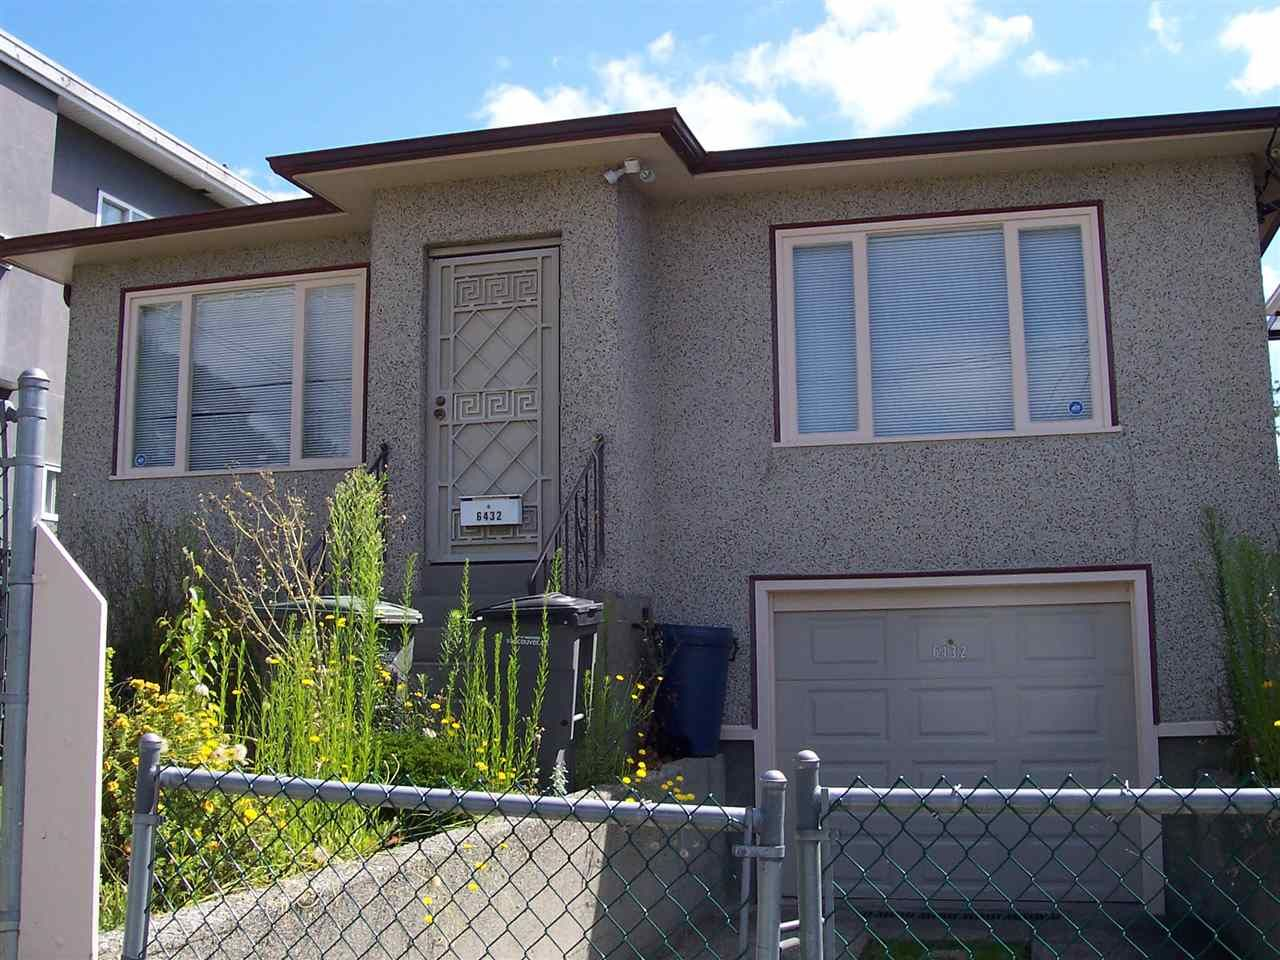 Main Photo: 6432 ST. GEORGE STREET in Vancouver: Fraser VE House for sale (Vancouver East)  : MLS®# R2192763